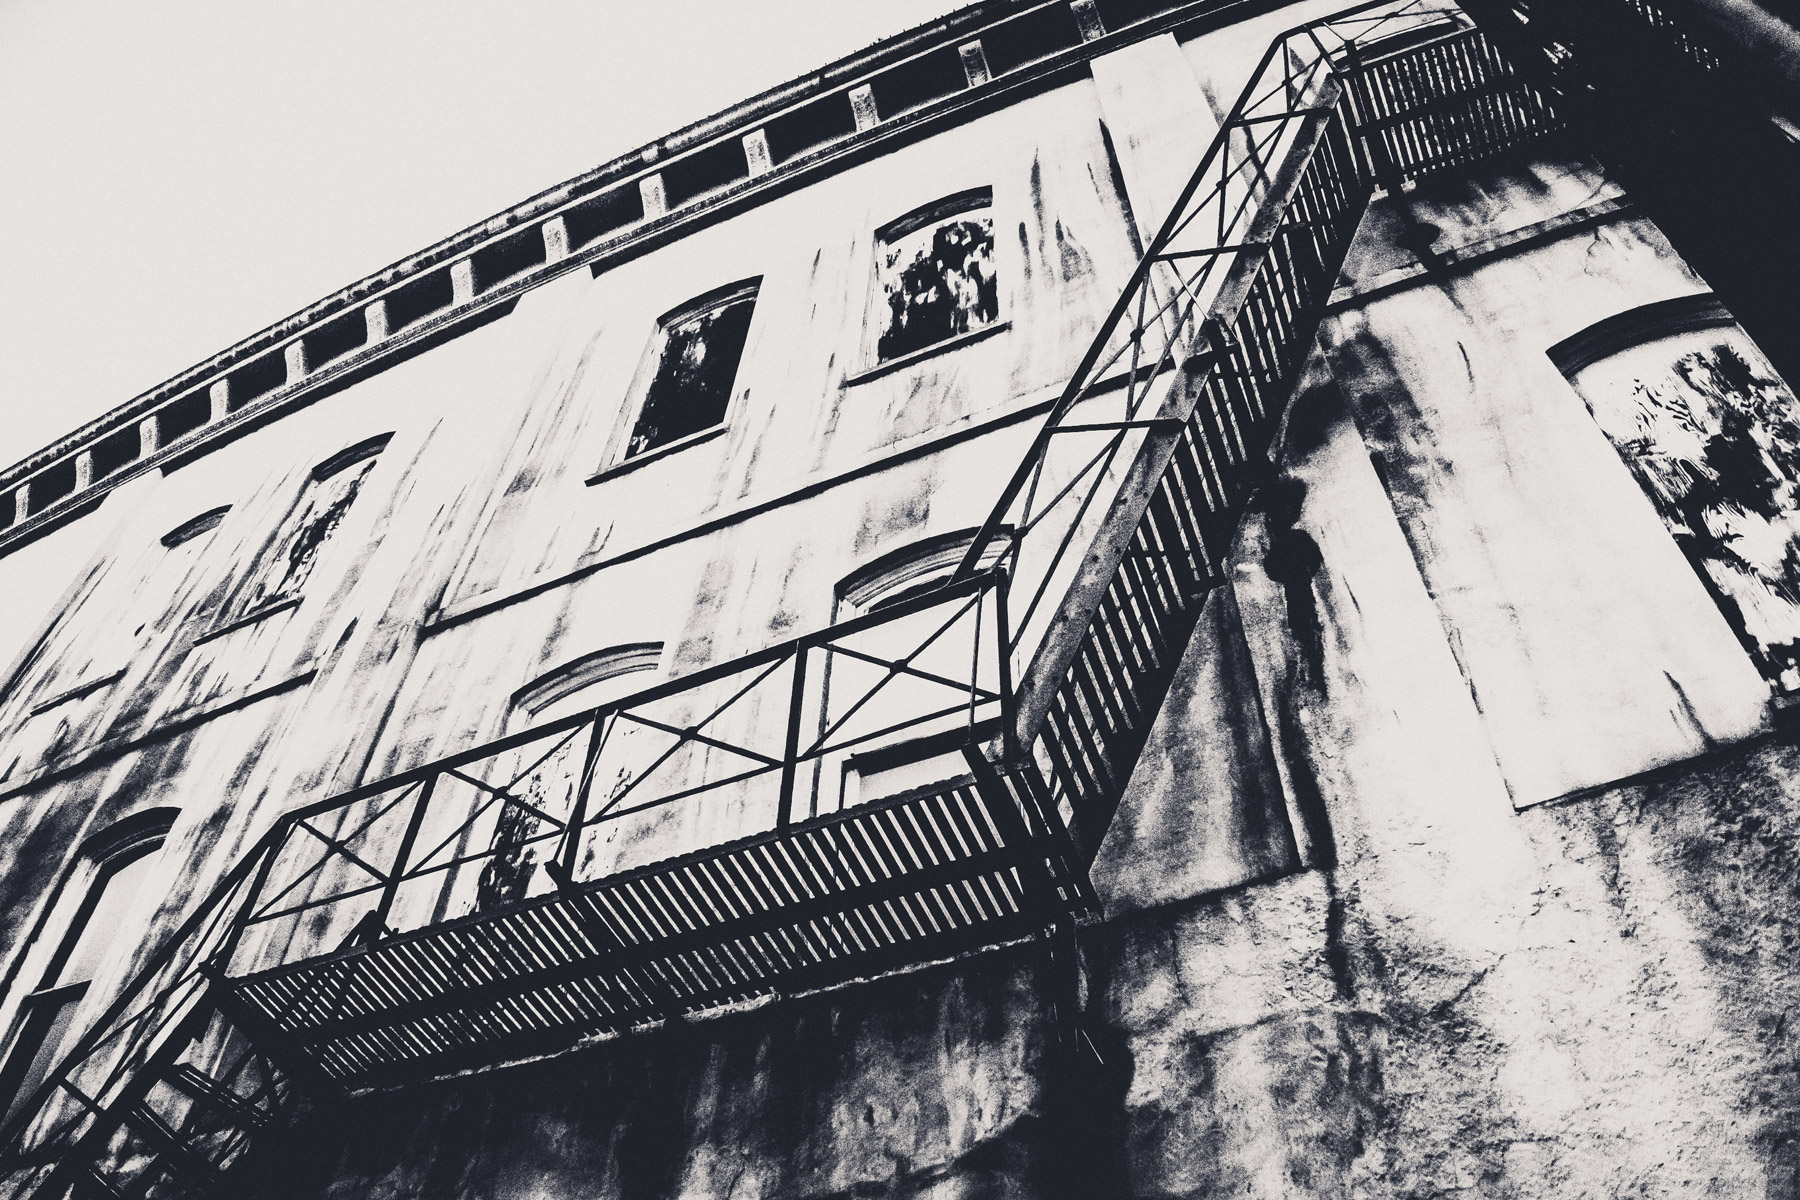 A fire escape on the side of an old building in Downtown Marshall, Texas.